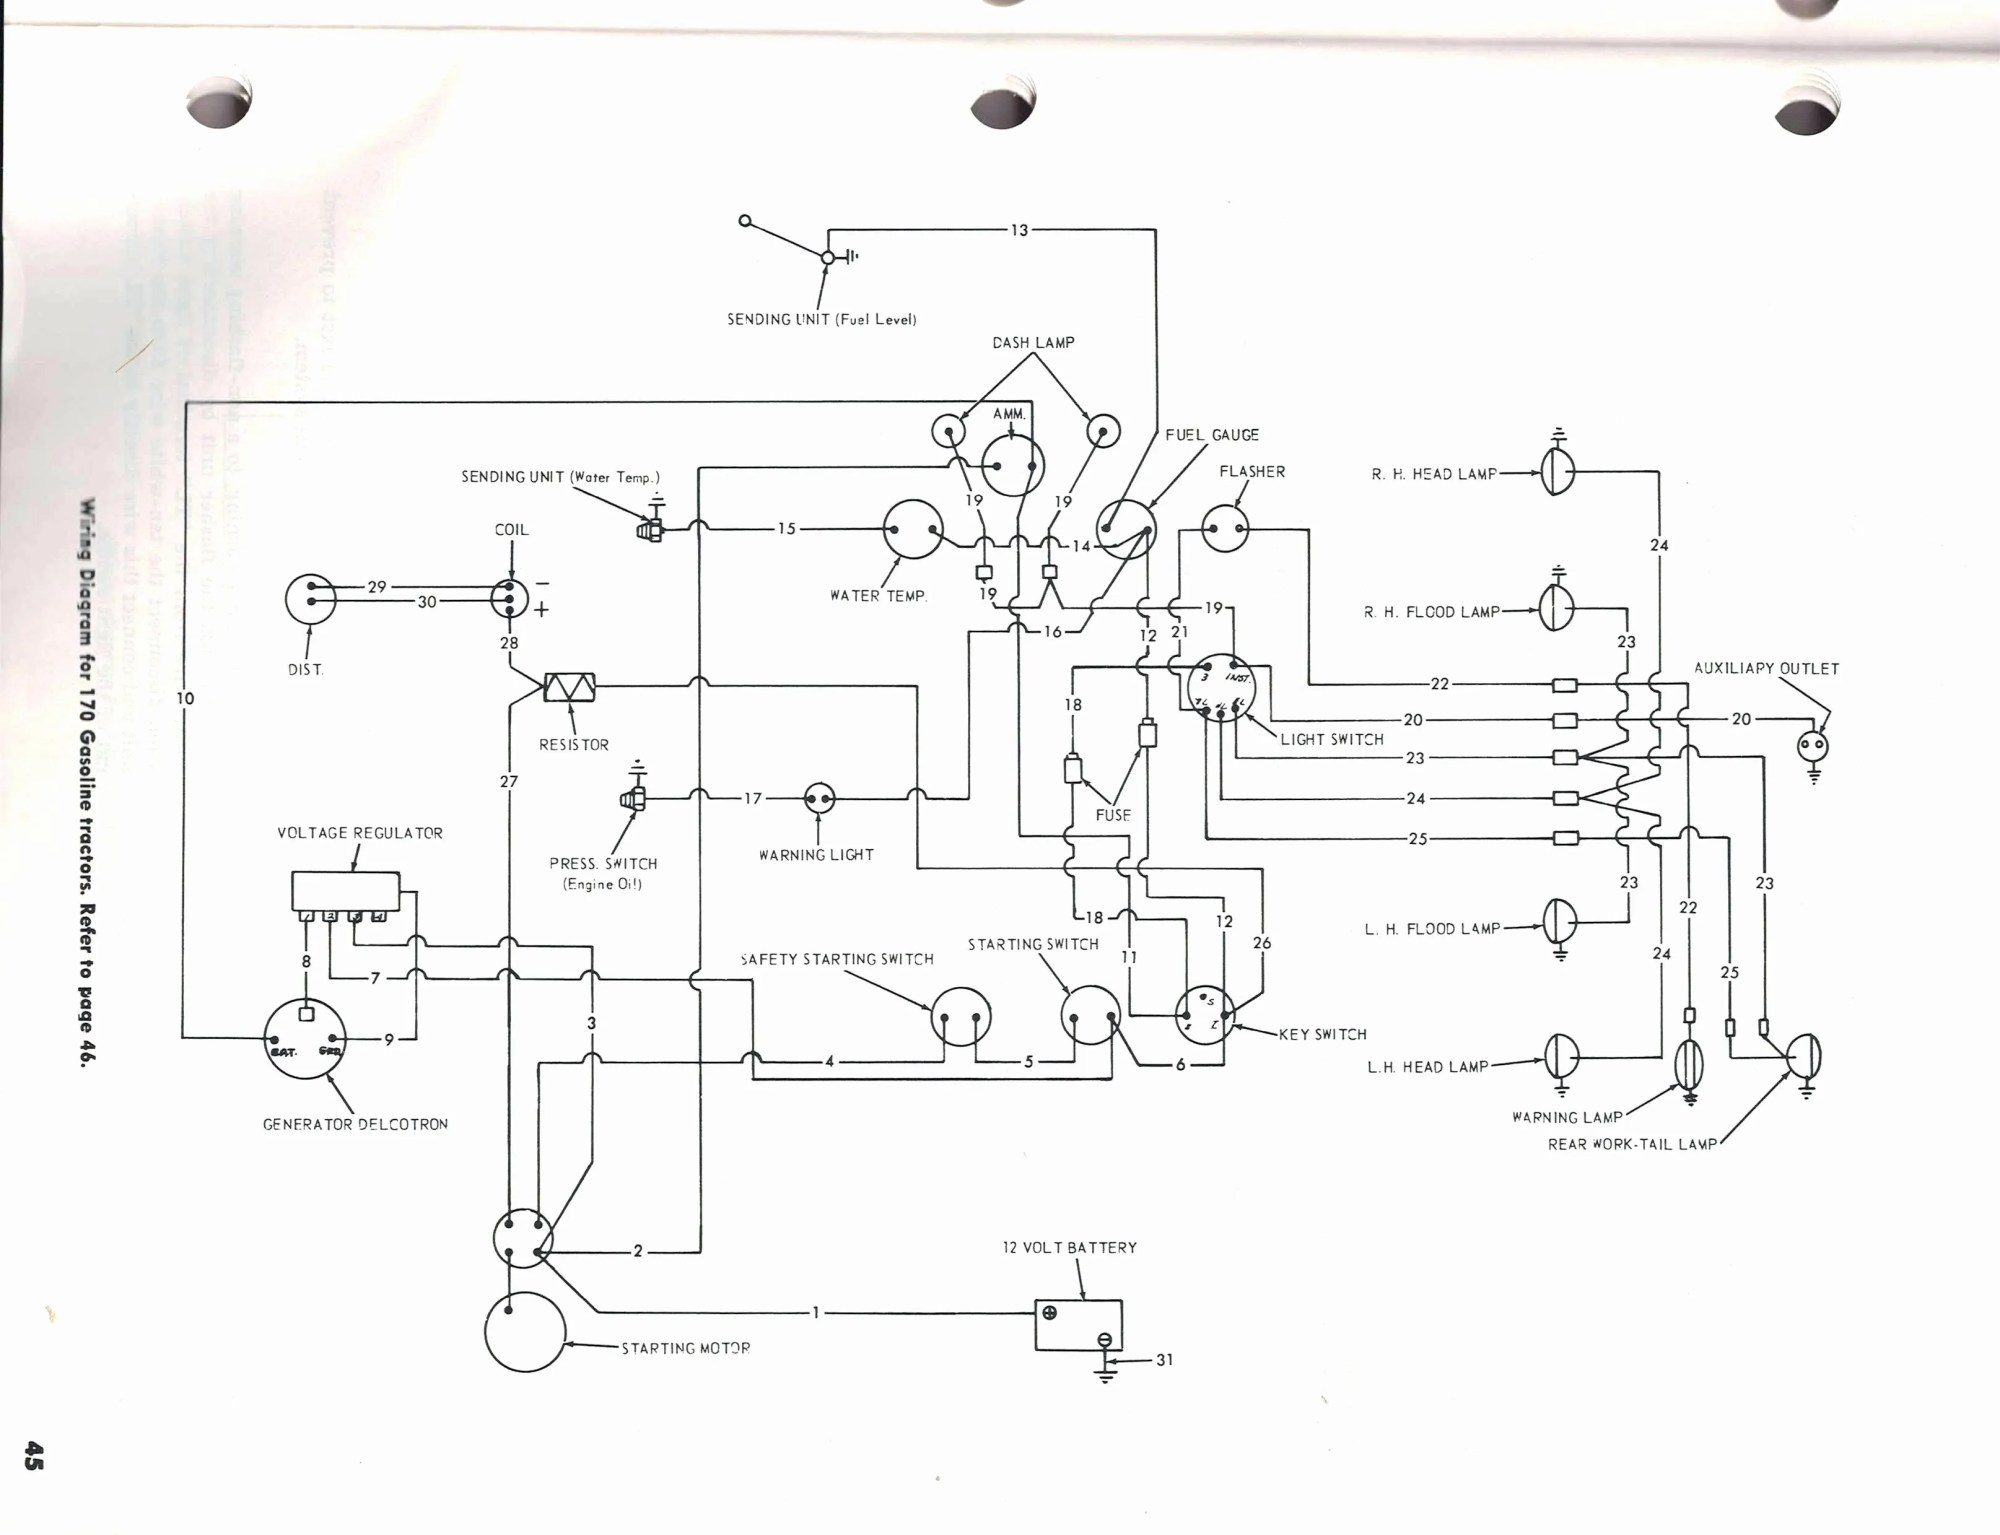 hight resolution of naa wiring diagram wiring diagram sheetnaa wiring diagram wiring diagram naa wiring diagram naa wiring diagram